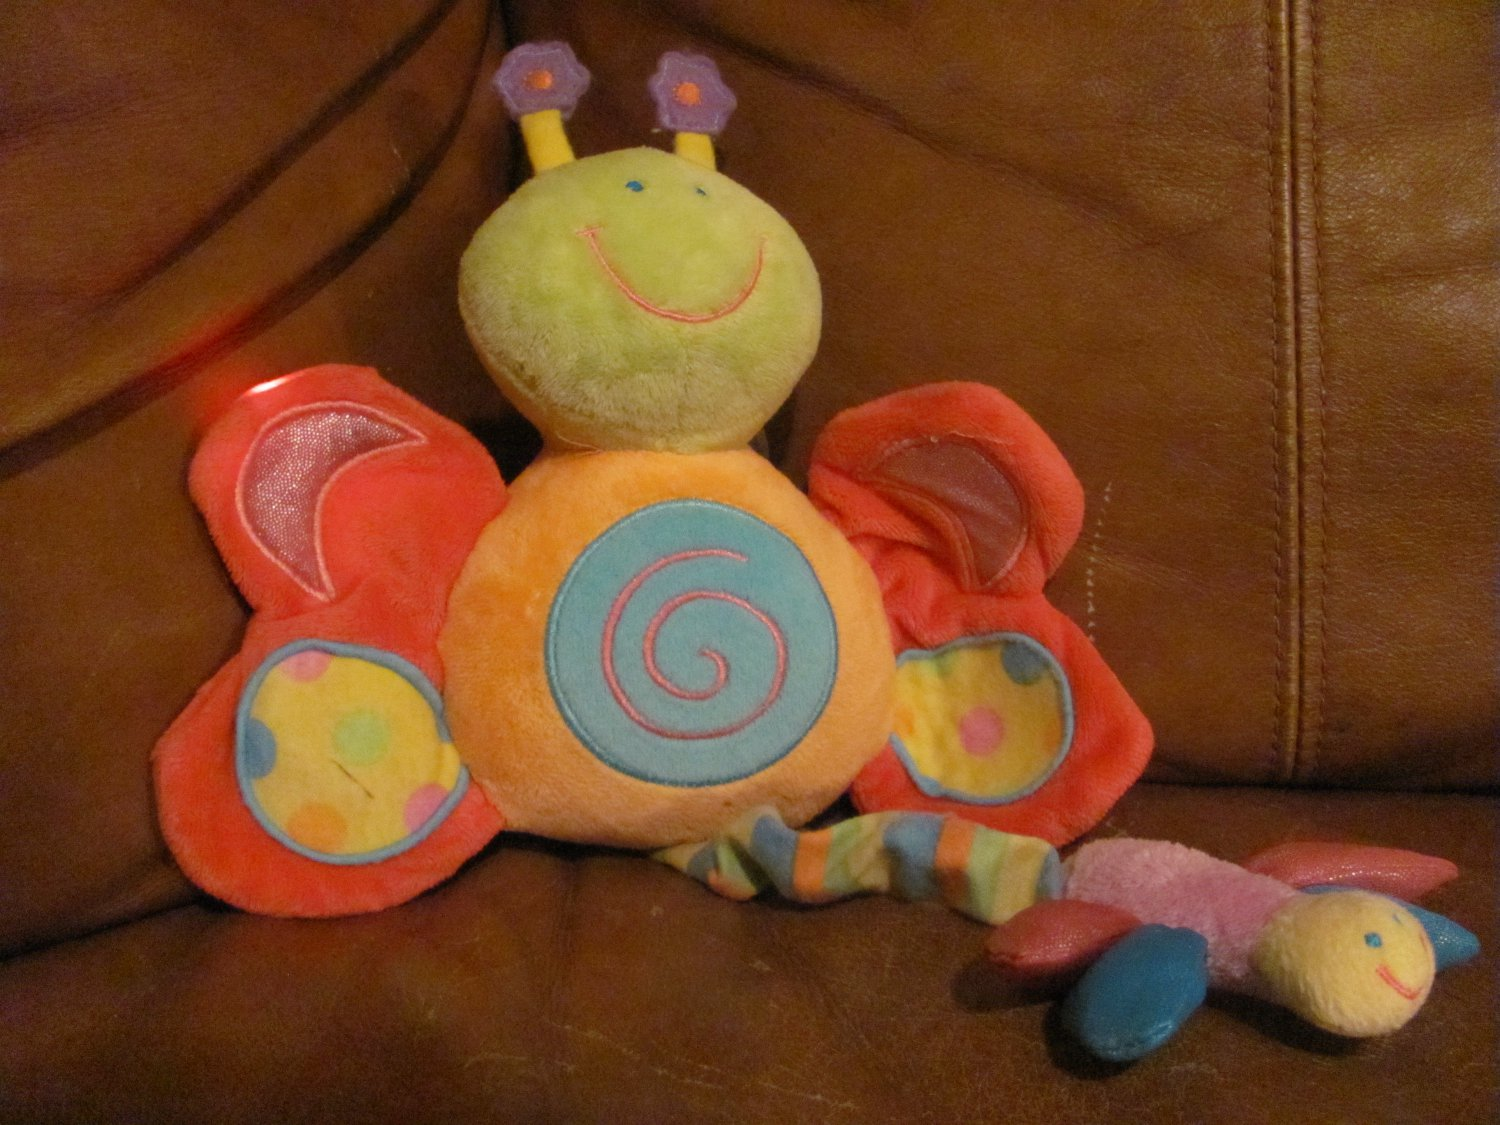 2004 Kids Preferred Butterfly Dragonfly Light Up Musical Crib Pull Toy